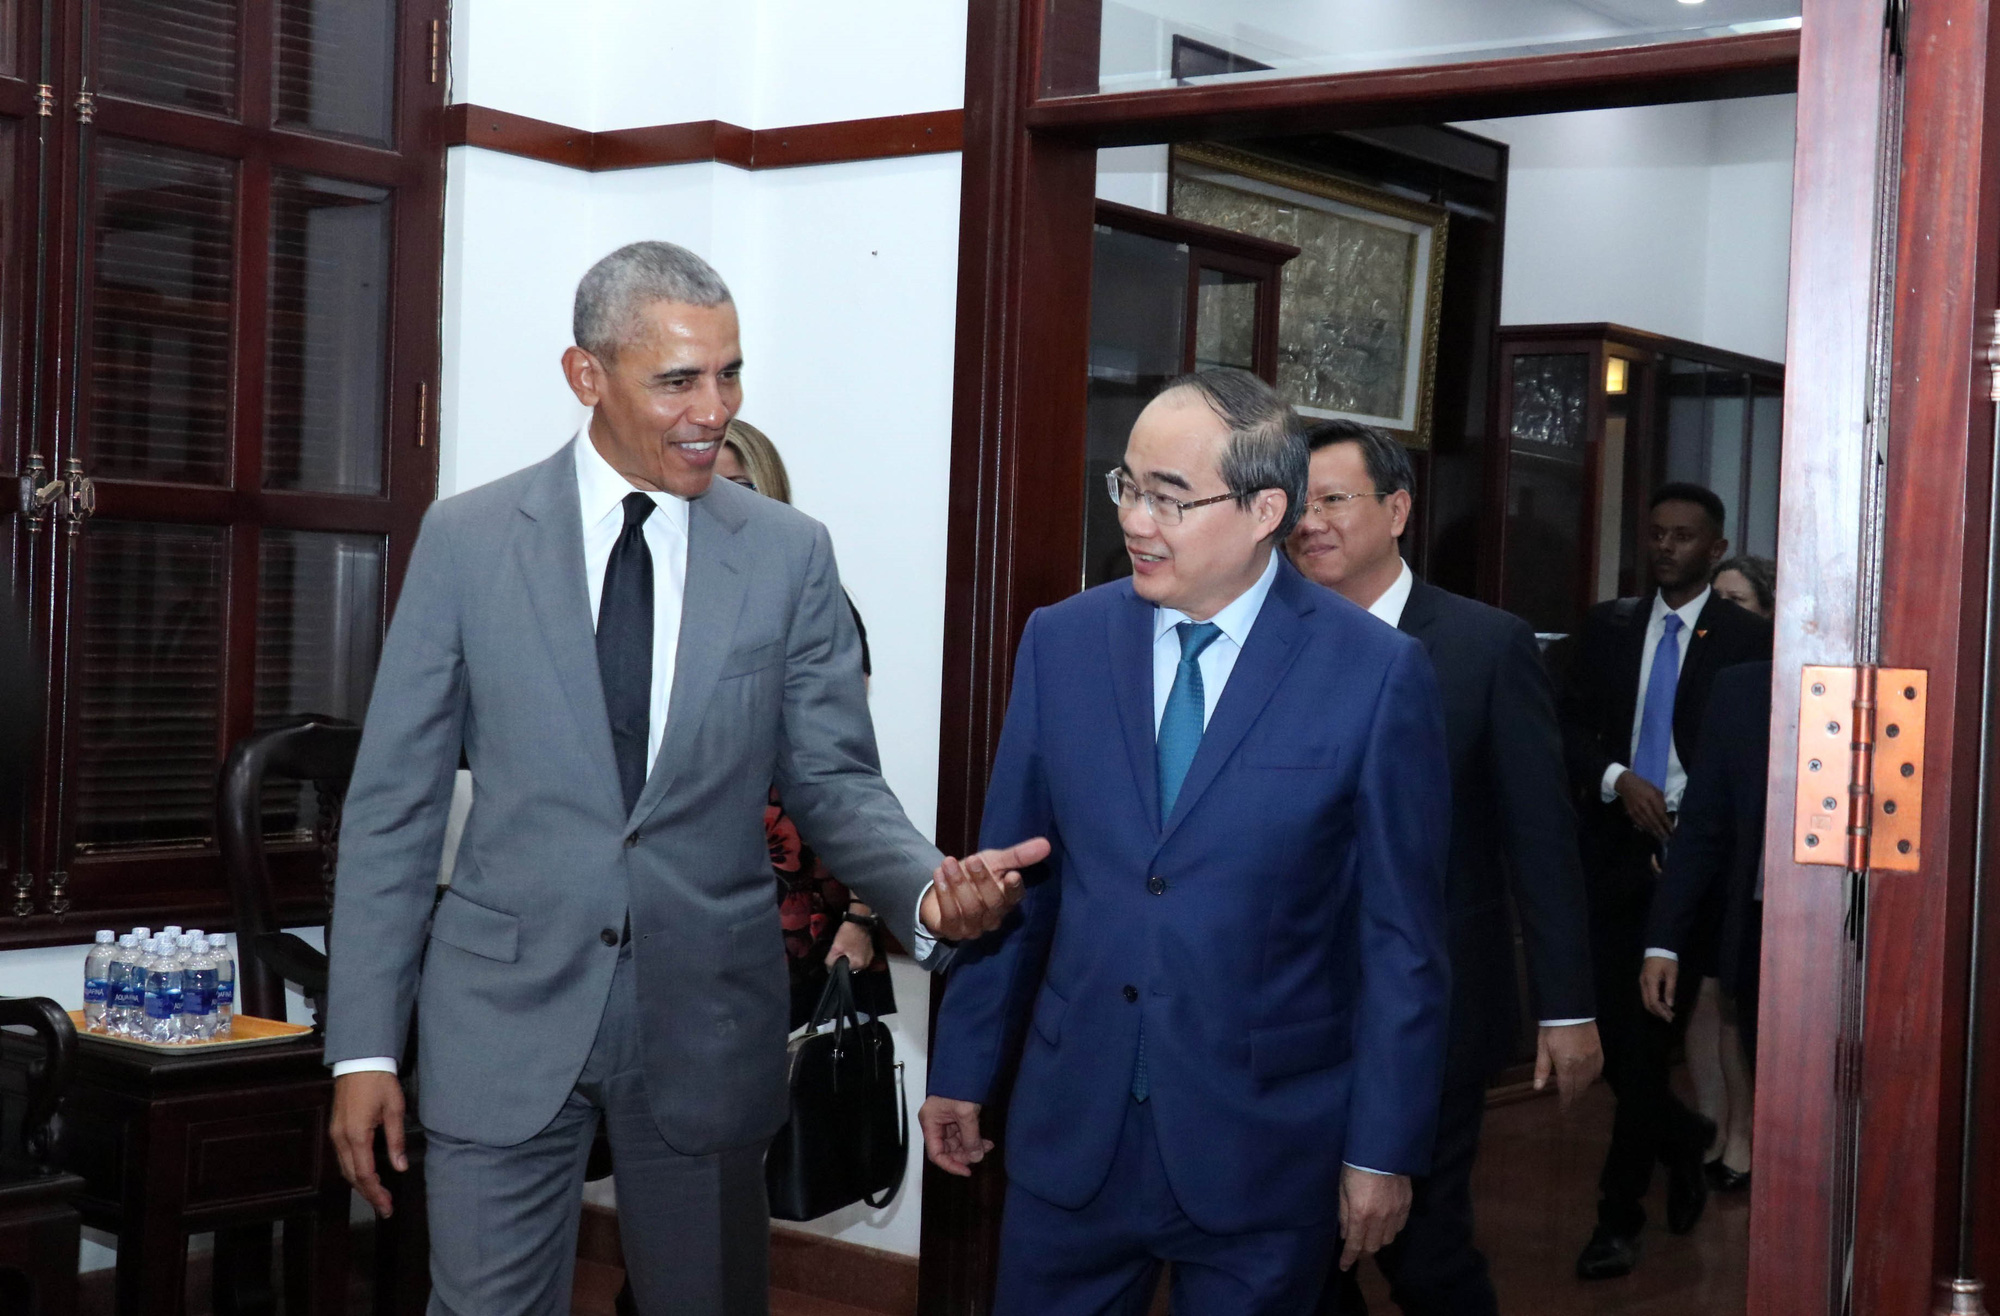 Former U.S. President Barack Obama talks with Ho Chi Minh City Party chief Nguyen Thien Nhan on December 9, 2019. Photo: Vietnam News Agency